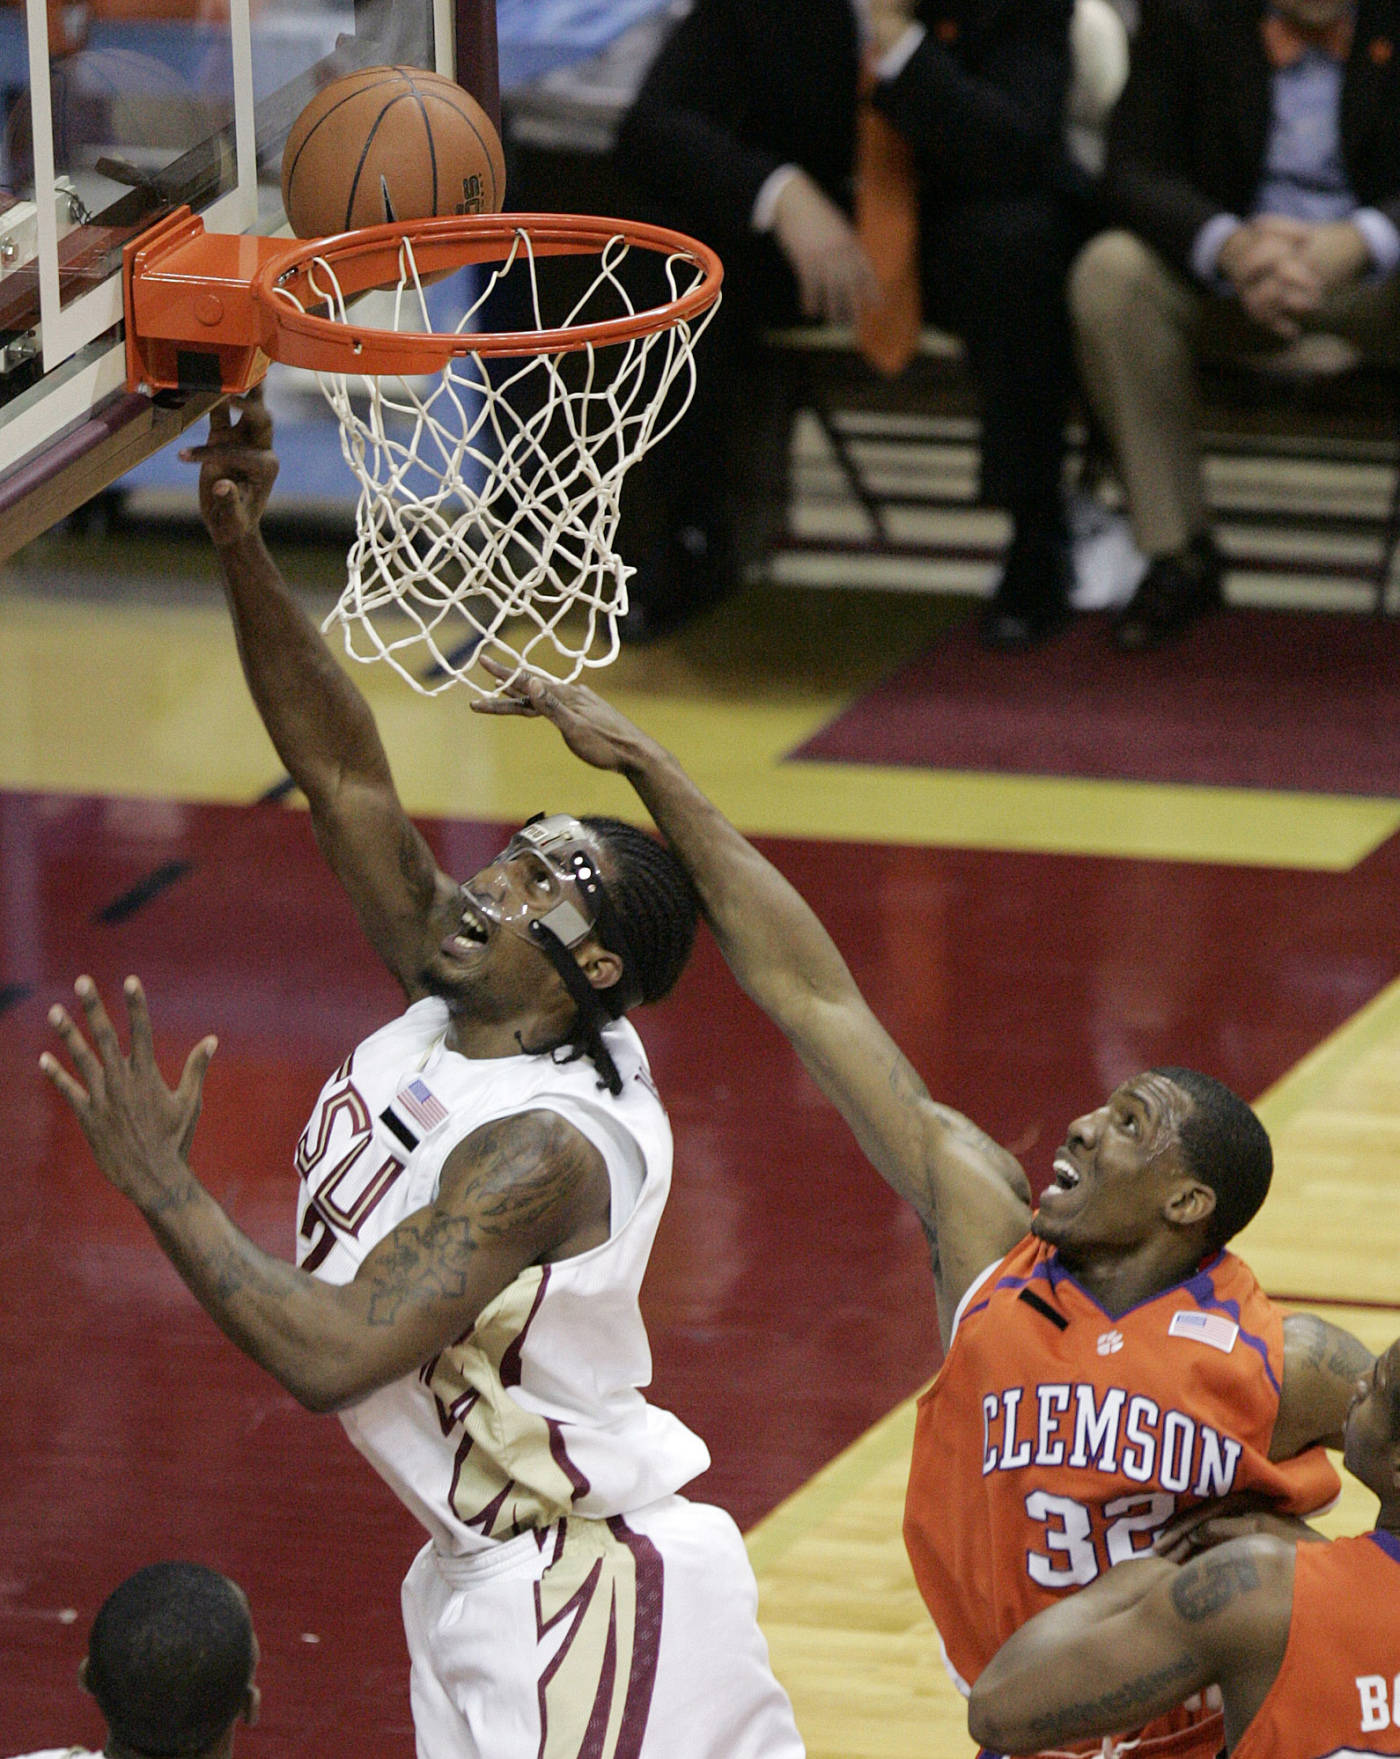 Florida State's Ryan Reid gets past the defense Clemson's Sam Perry to get off a shot in the first half of a basketball game Tuesday, Feb. 19, 2008, in Tallahassee, Fla. (AP Photo/Steve Cannon)